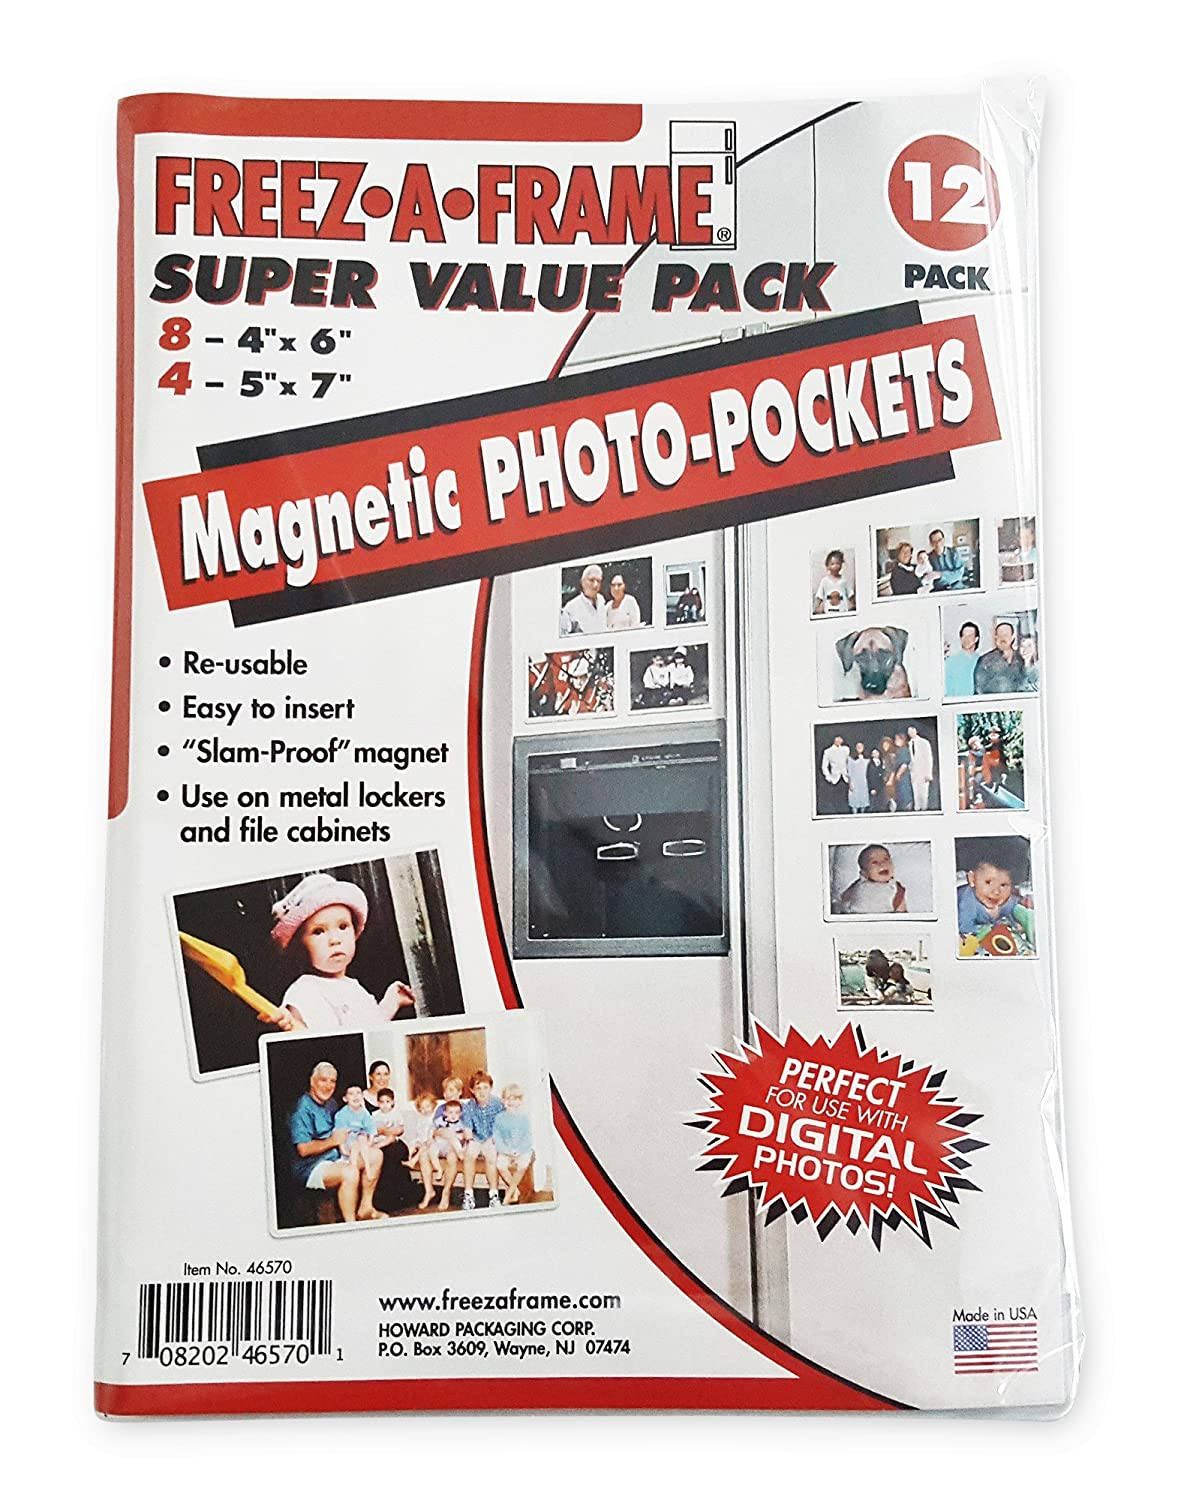 White FREEZ-A-FRAME Magnetic Photo Picture Frame Contains Eight 4 x 6 /& Four 5 x 7 Frames 12 Pack